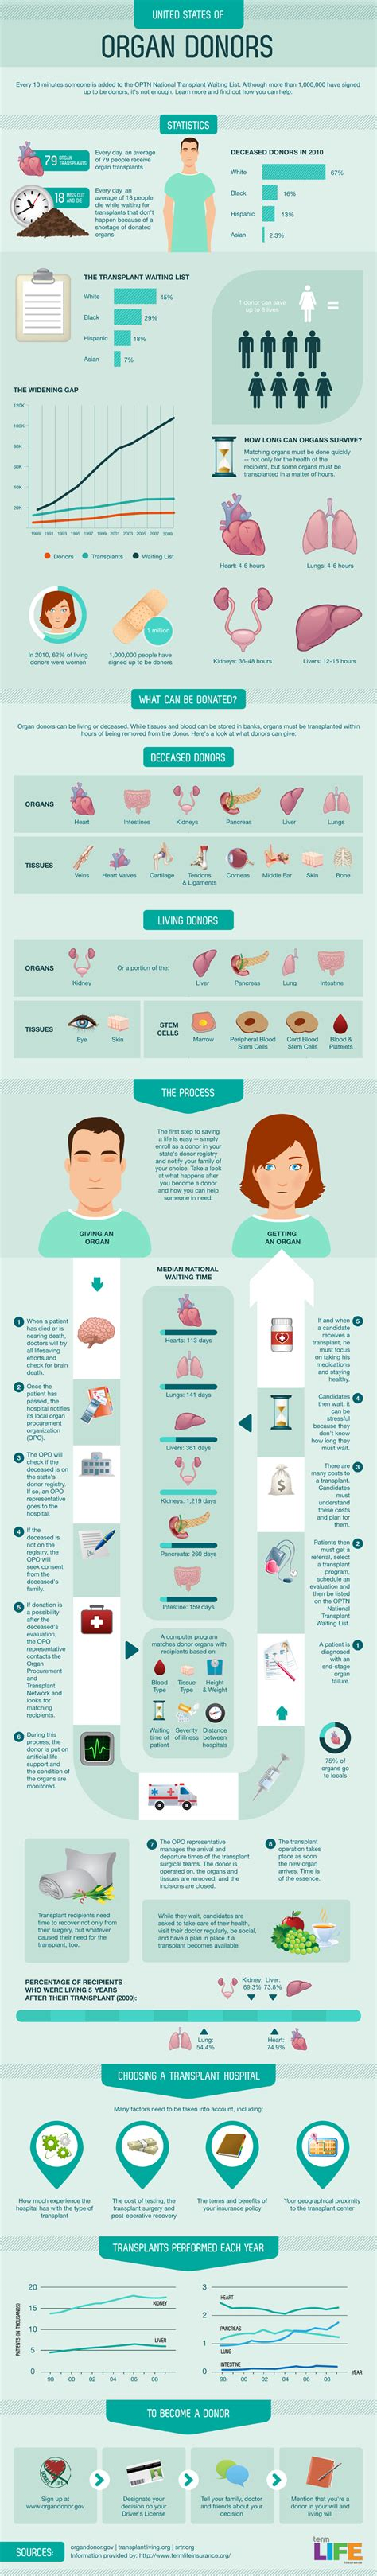 Pros and cons of organ donation hrfnd